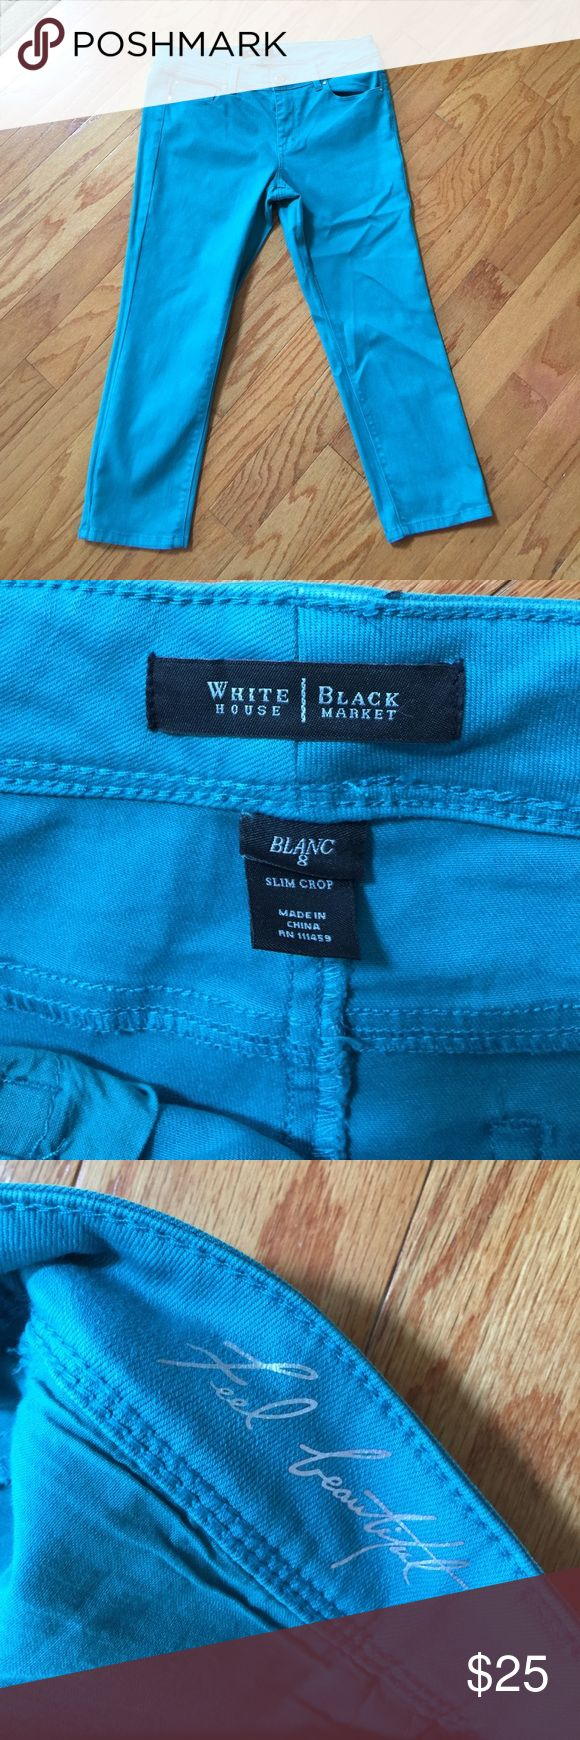 """WHBM teal Stretch jeans Slim Crop sz 8 Blanc Ladies teal slim crop jeans from WHITE HOUSE BLACK MARKET Blanc fit  Size 8  Waist: 34""""   Hips: 39""""   Rise: 9""""   Inseam: 24""""   Silver tone and diamanté hardware.   Machine Washable.  Shell: 92% cotton, 6% elasterell, 2% Lycra.   In excellent gently used condition.   From a smoke free home. White House Black Market Jeans Ankle & Cropped"""